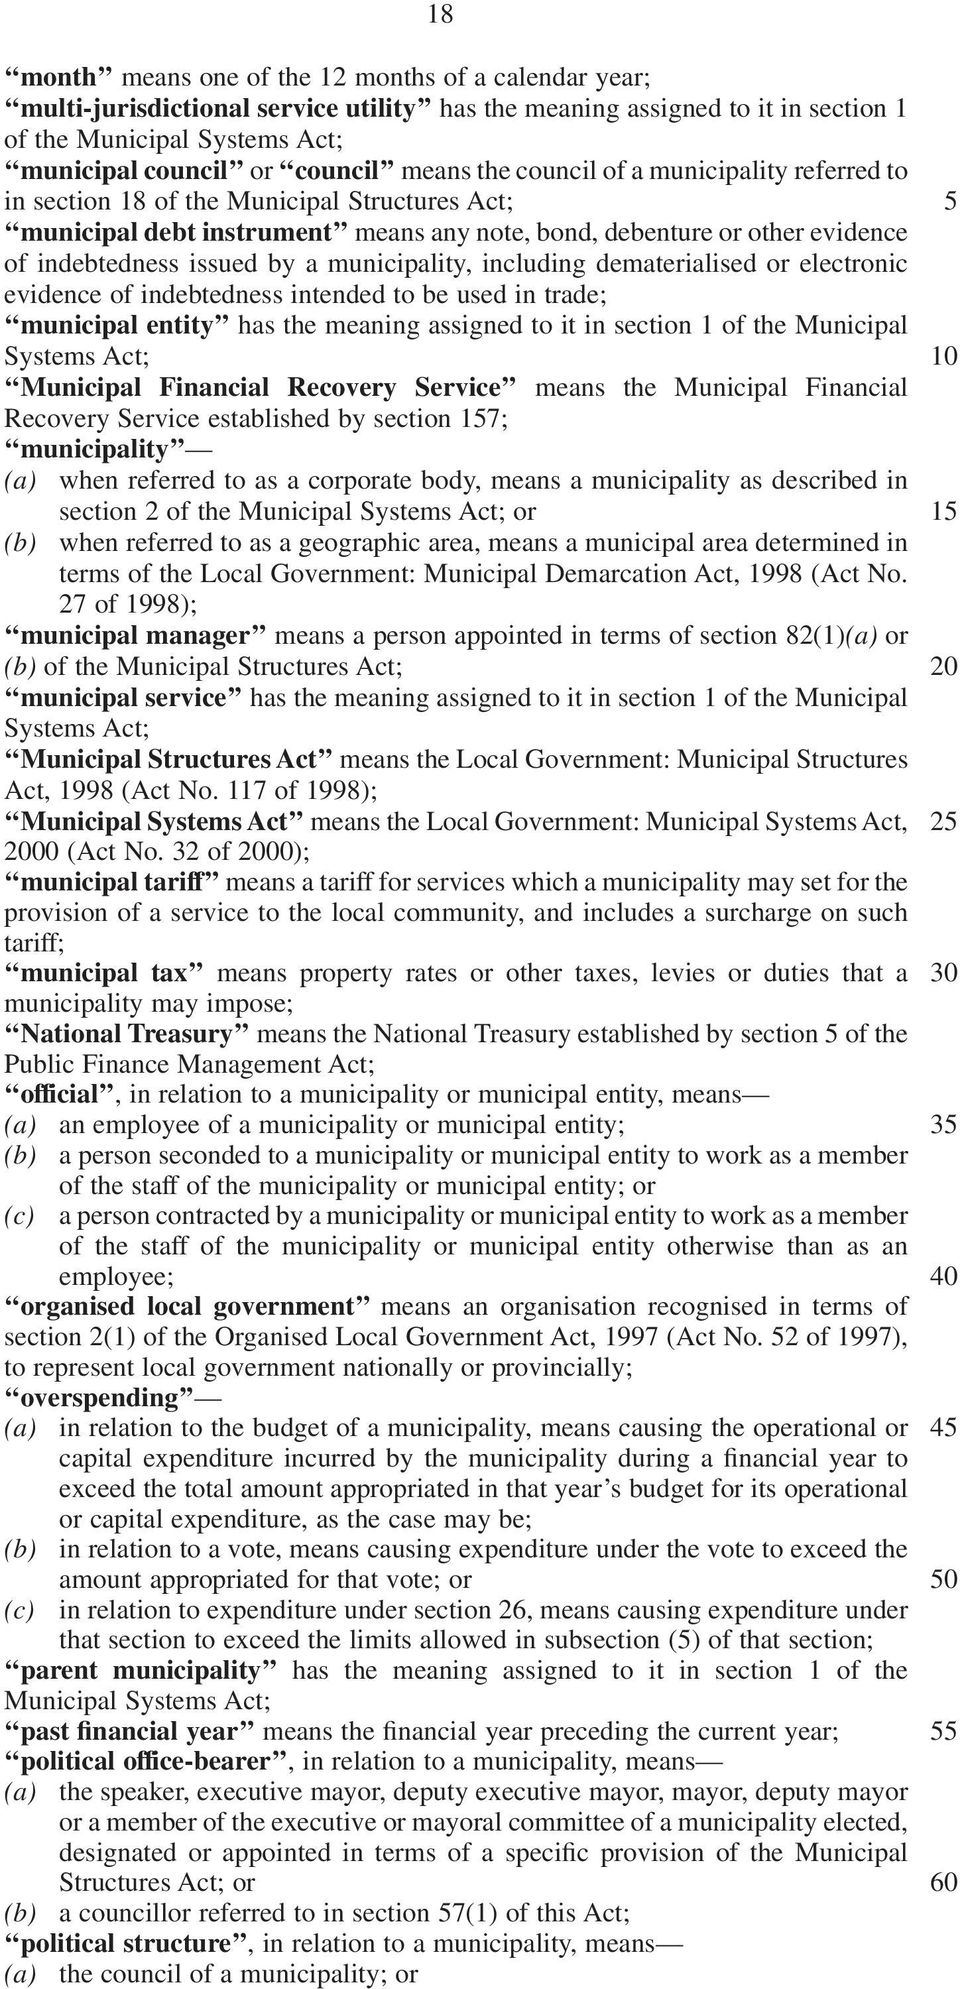 municipality, including dematerialised or electronic evidence of indebtedness intended to be used in trade; municipal entity has the meaning assigned to it in section 1 of the Municipal Systems Act;